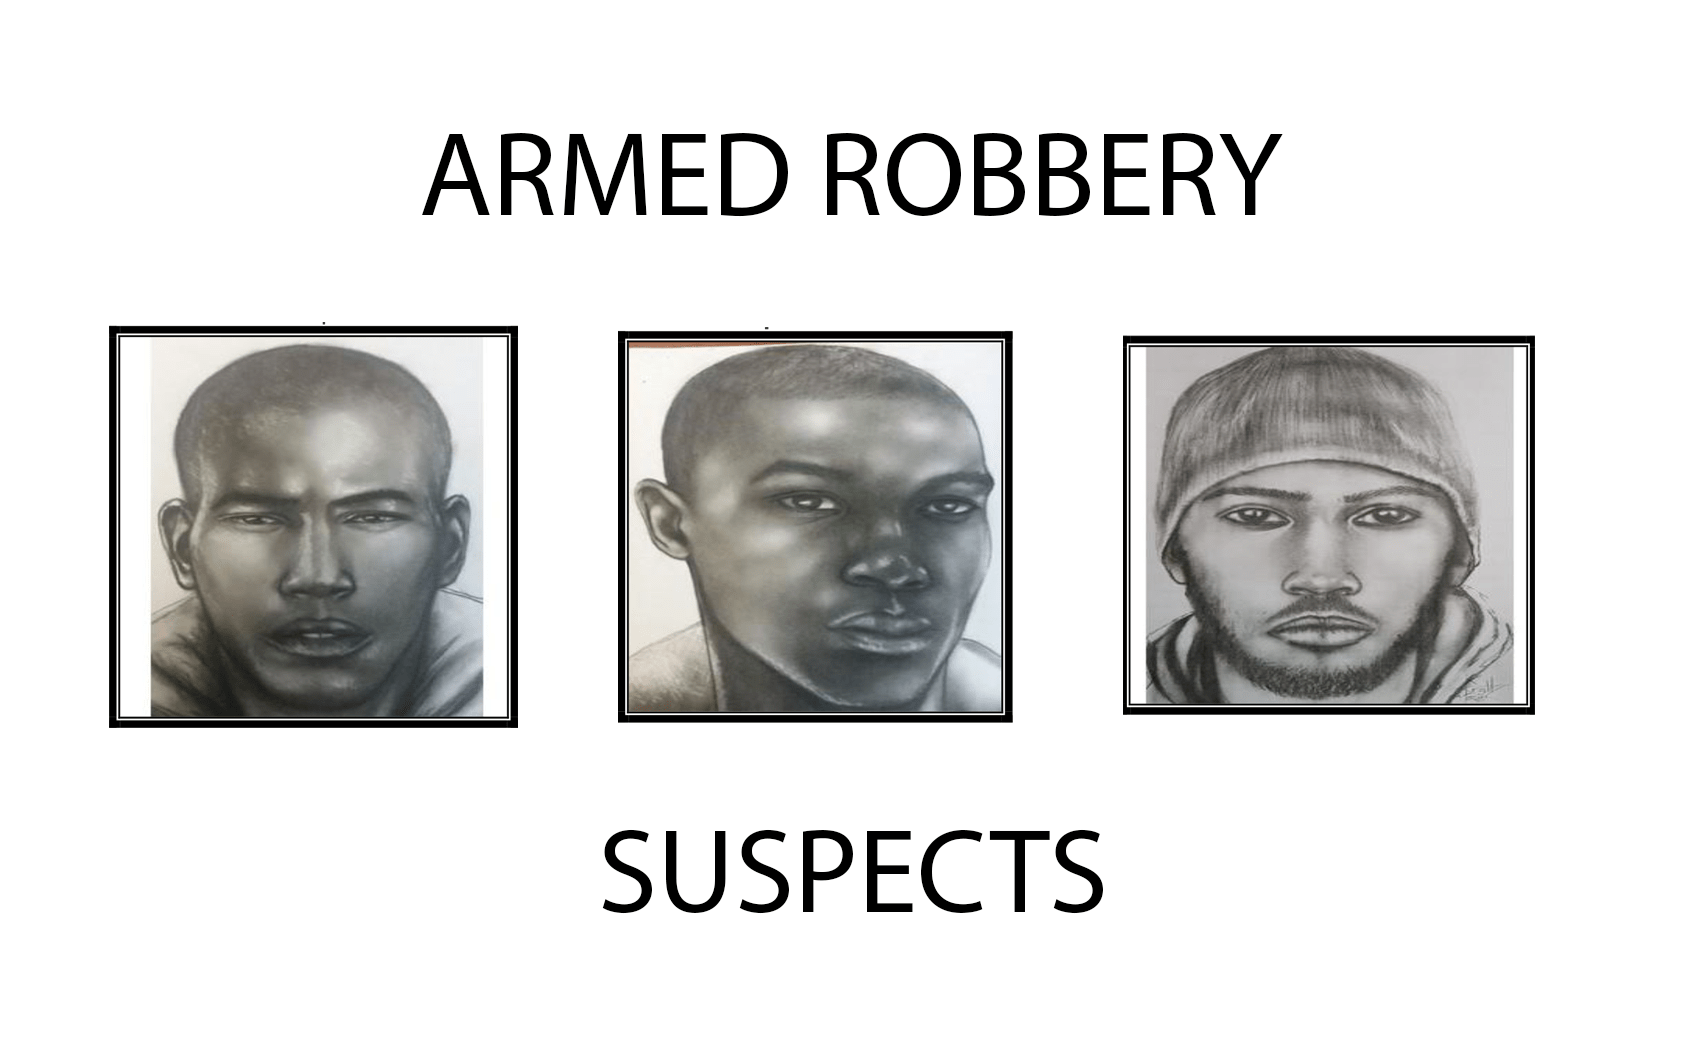 Manhunt for armed robbery suspects